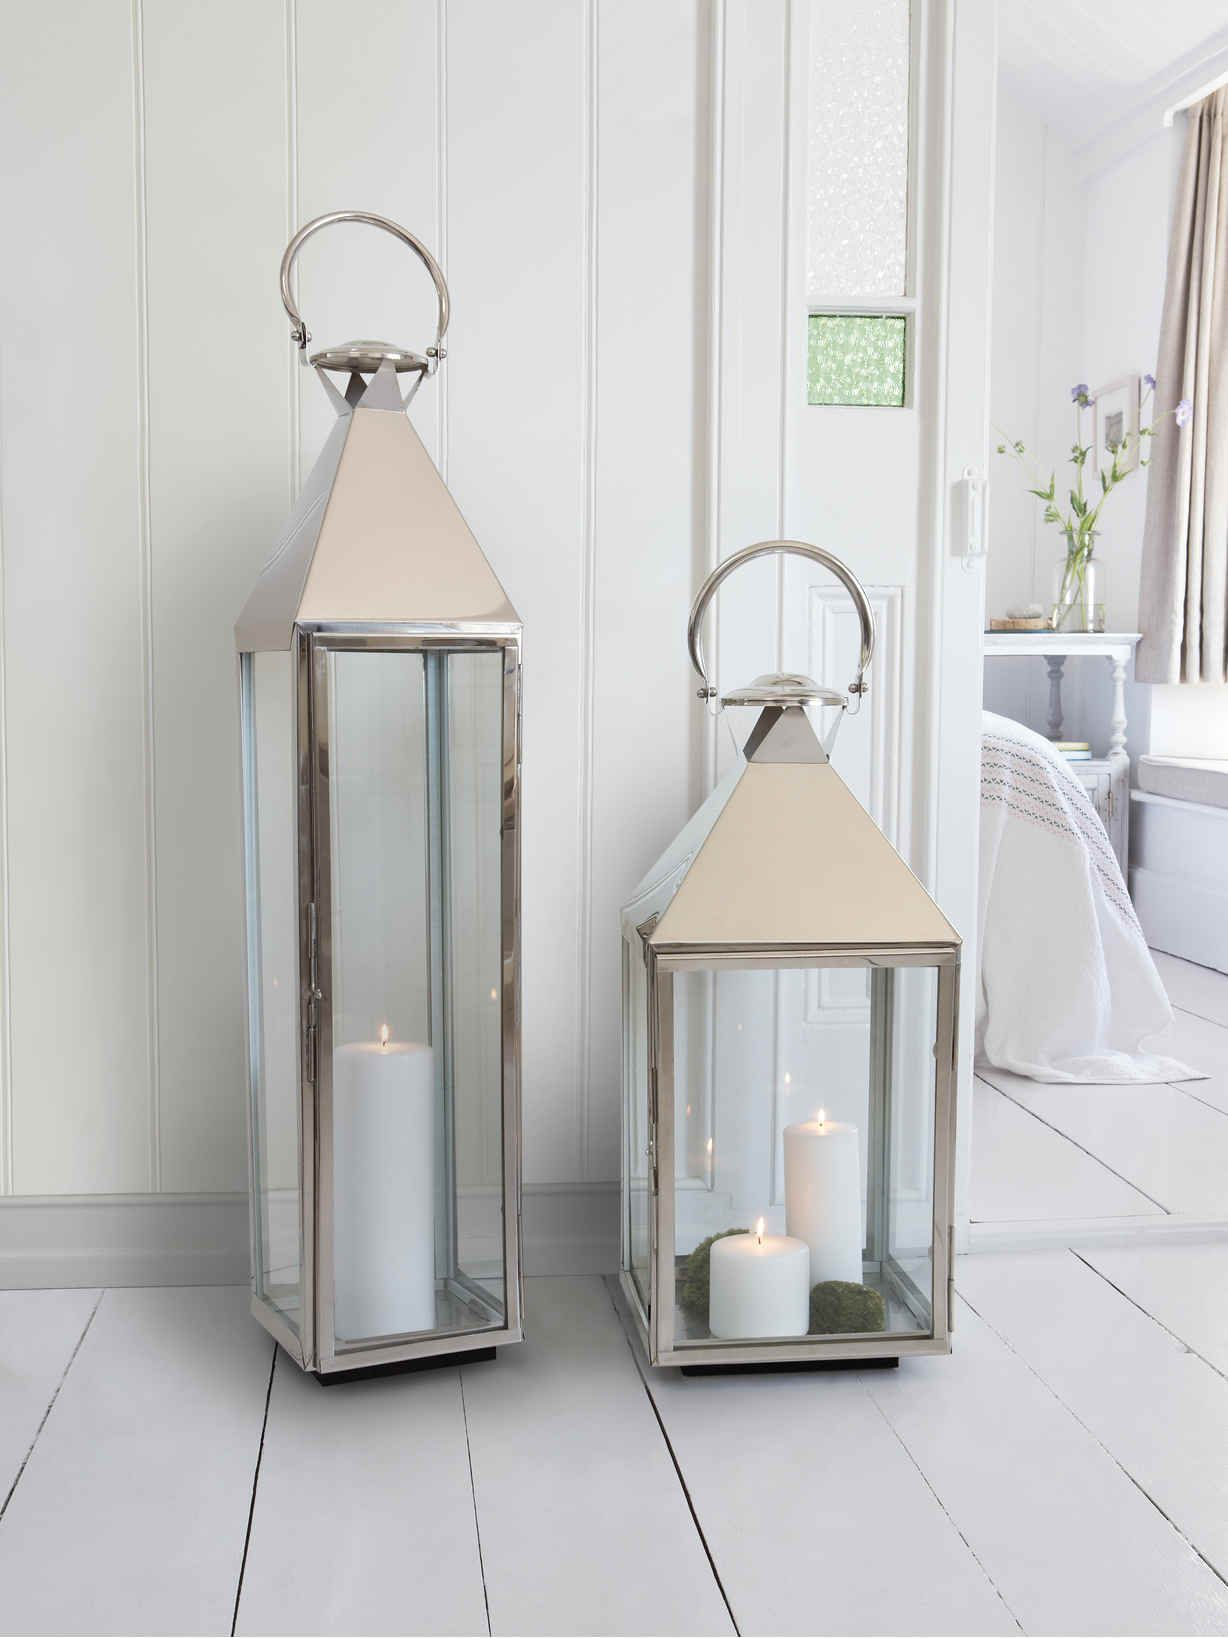 Big Stainless Steel Lanterns Indoor Candle Lanterns Indoor Lanterns Large Candle Lanterns